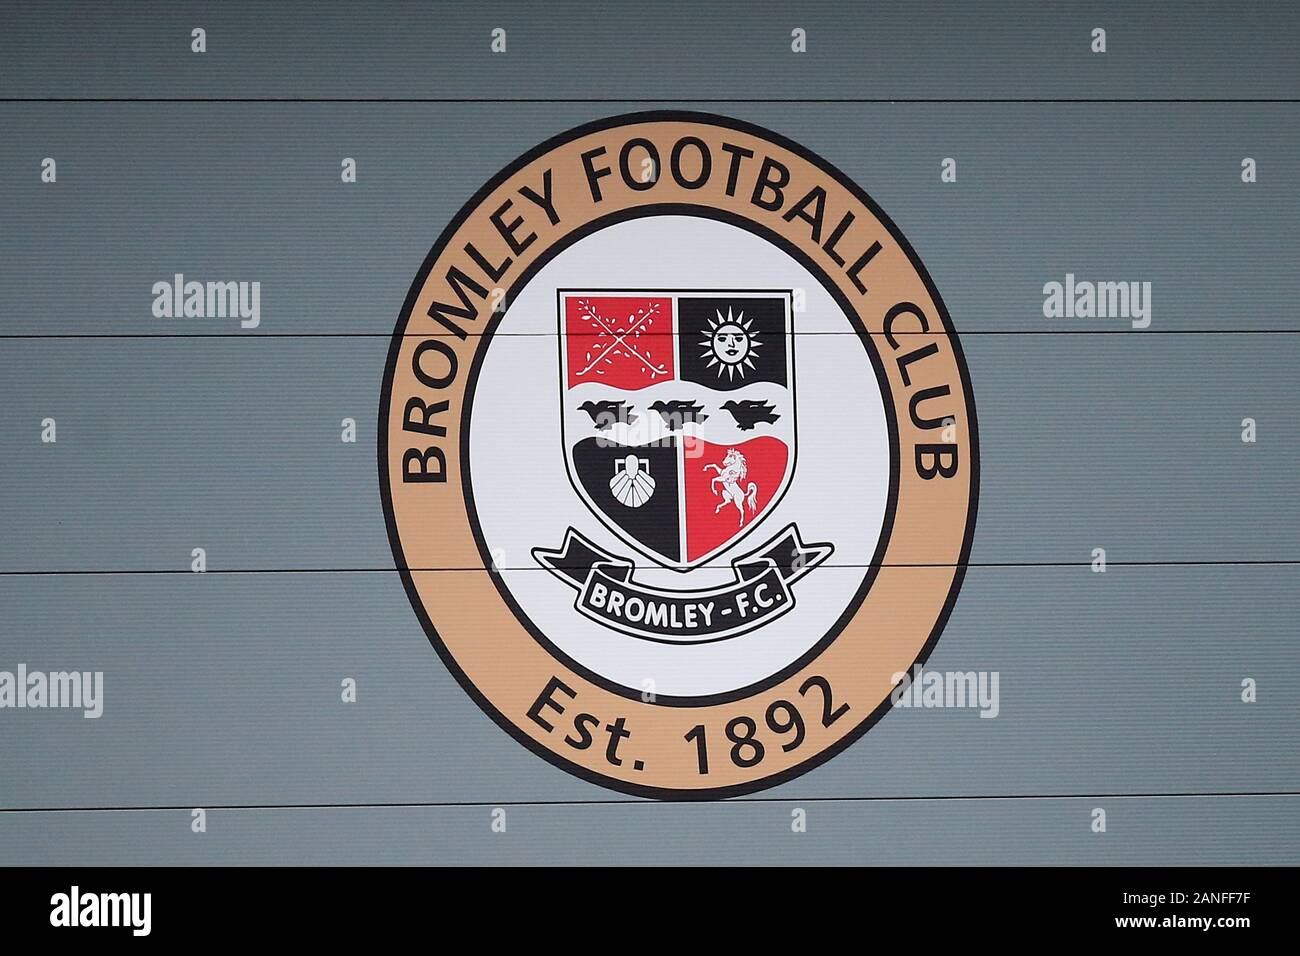 Bromley FC signage during Bromley vs Dagenham & Redbridge, Vanarama National League Football at The Westminster Waste Stadium on 28th December 2019 Stock Photo